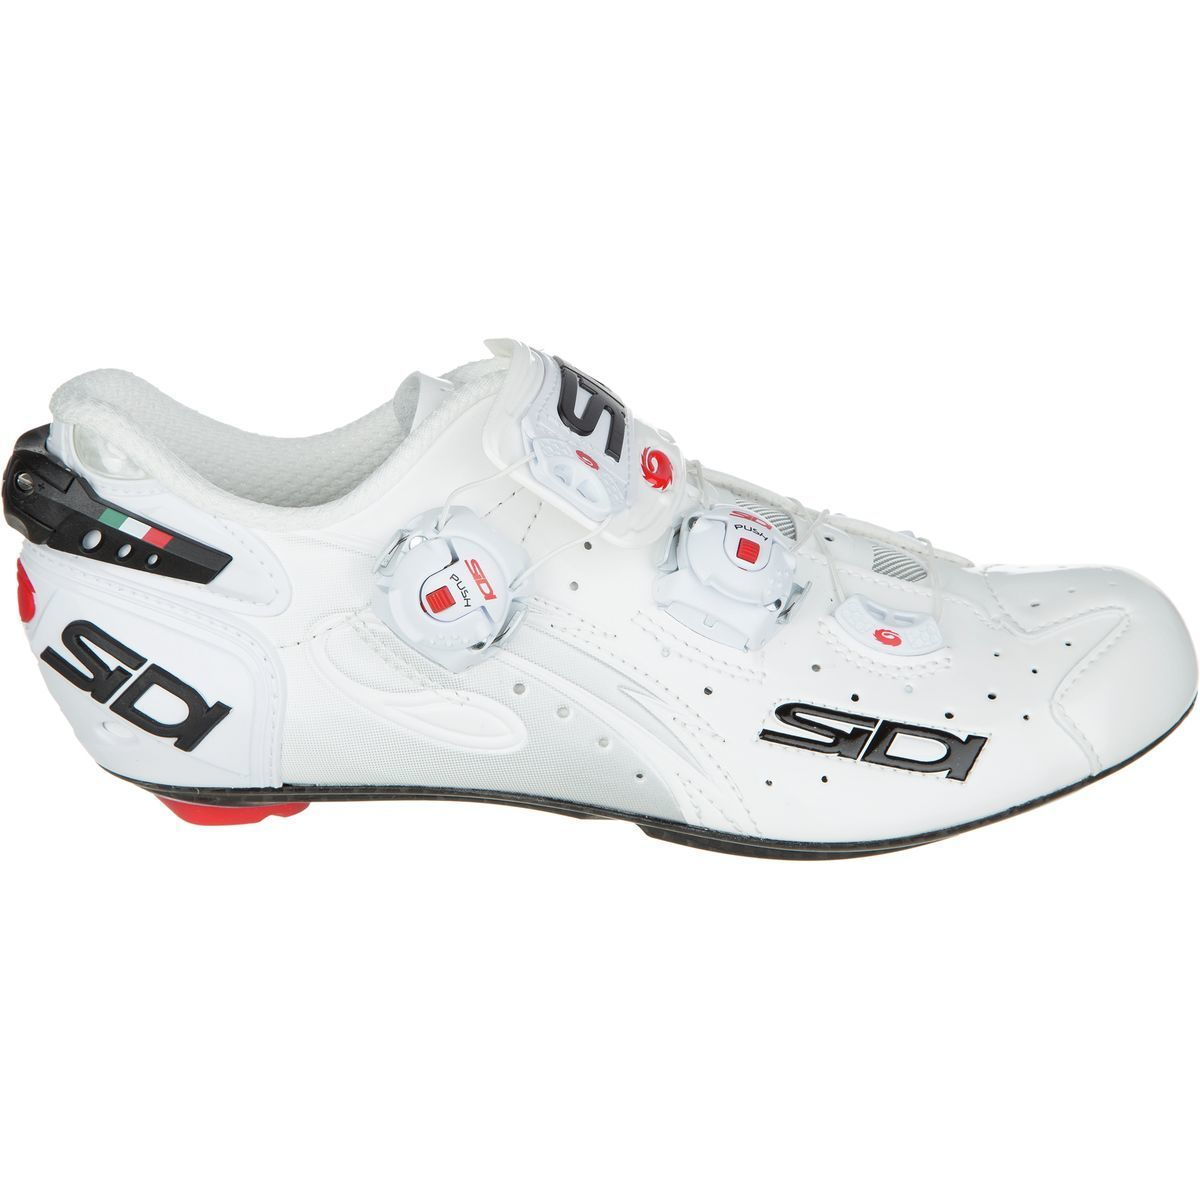 Sidi Wire Push Shoes Women S Competitive Cyclist